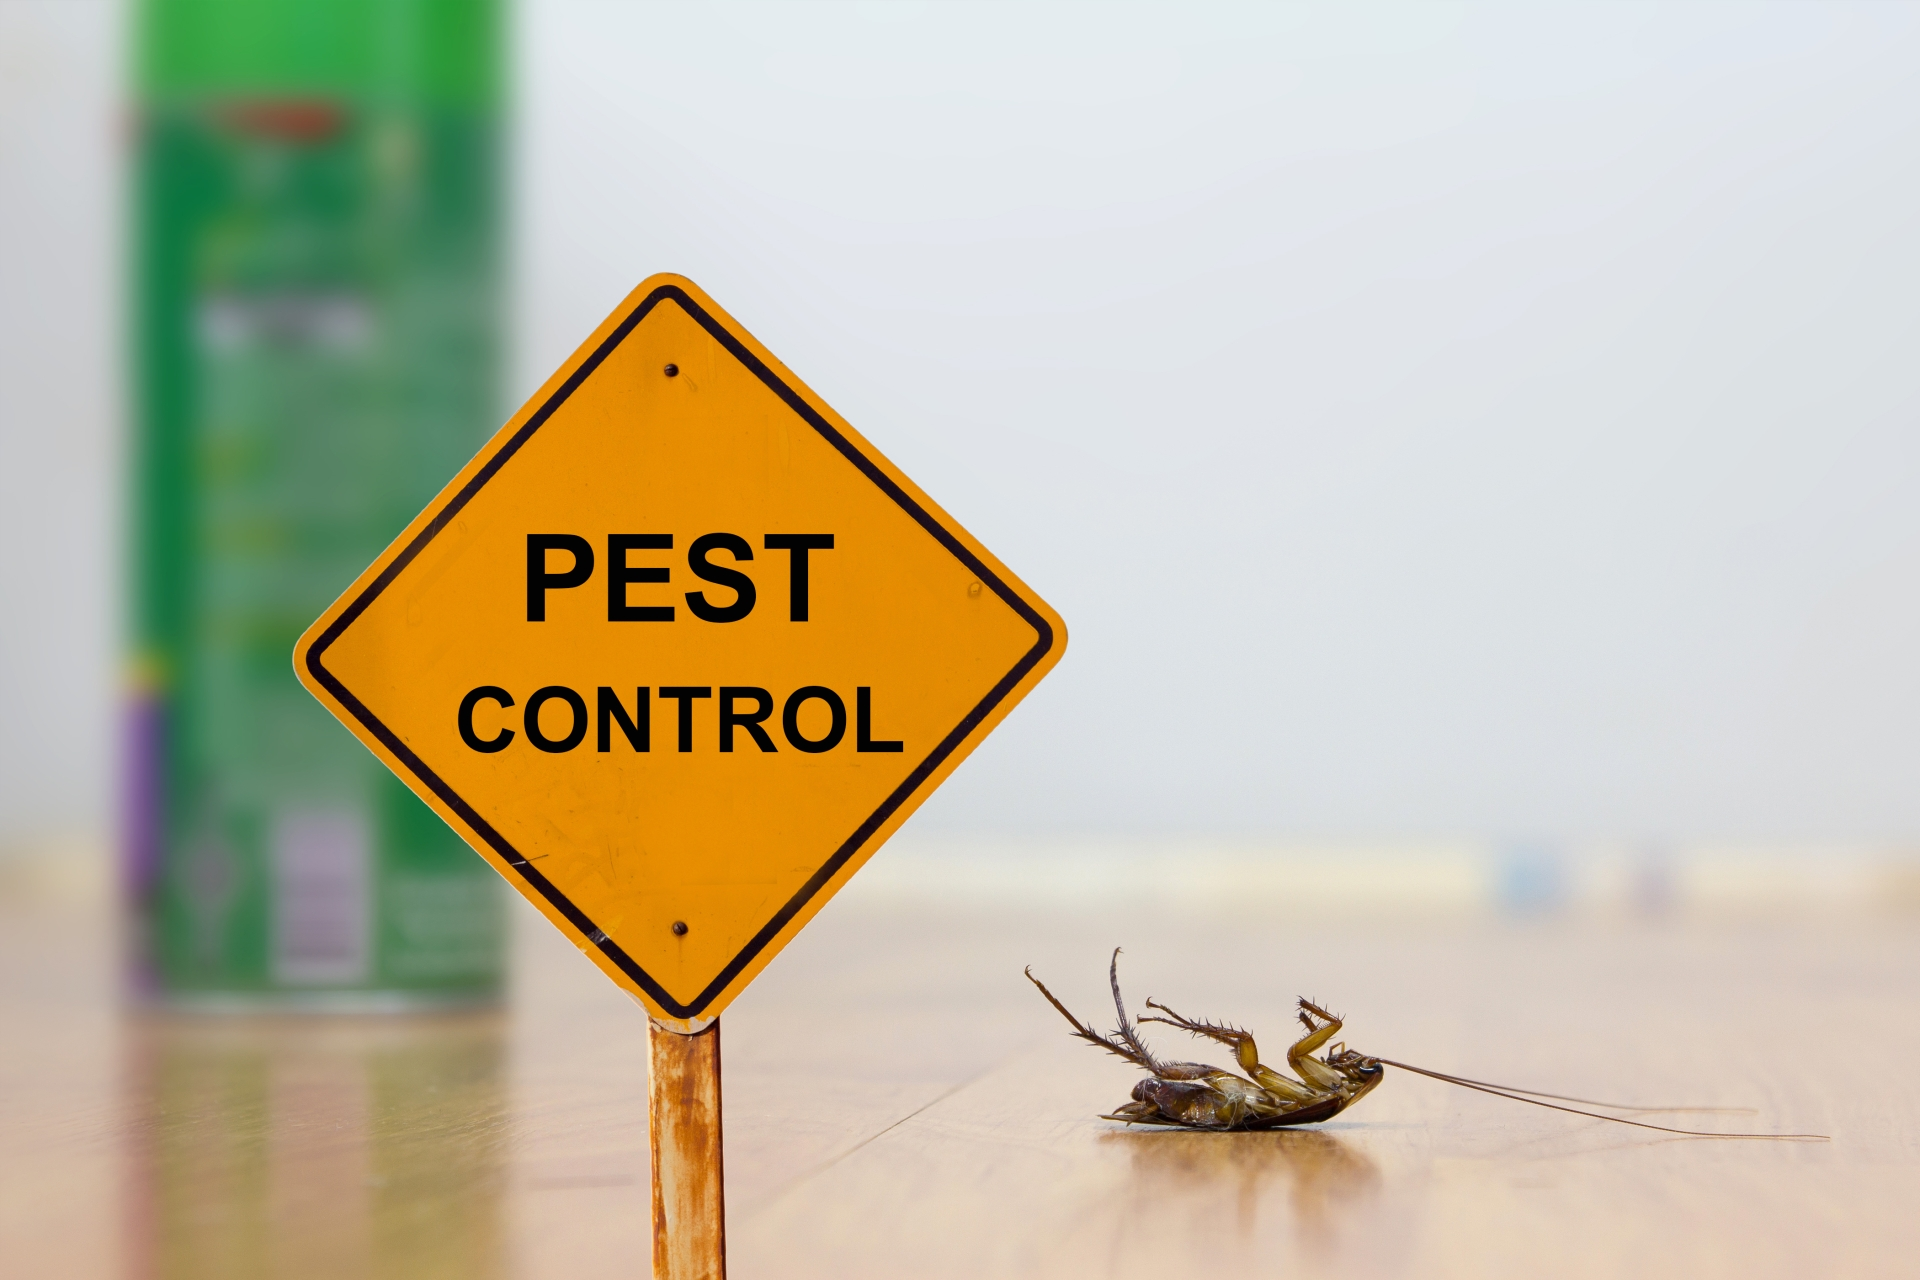 24 Hour Pest Control, Pest Control in Islington, Barnsbury, Canonbury, N1. Call Now 020 8166 9746